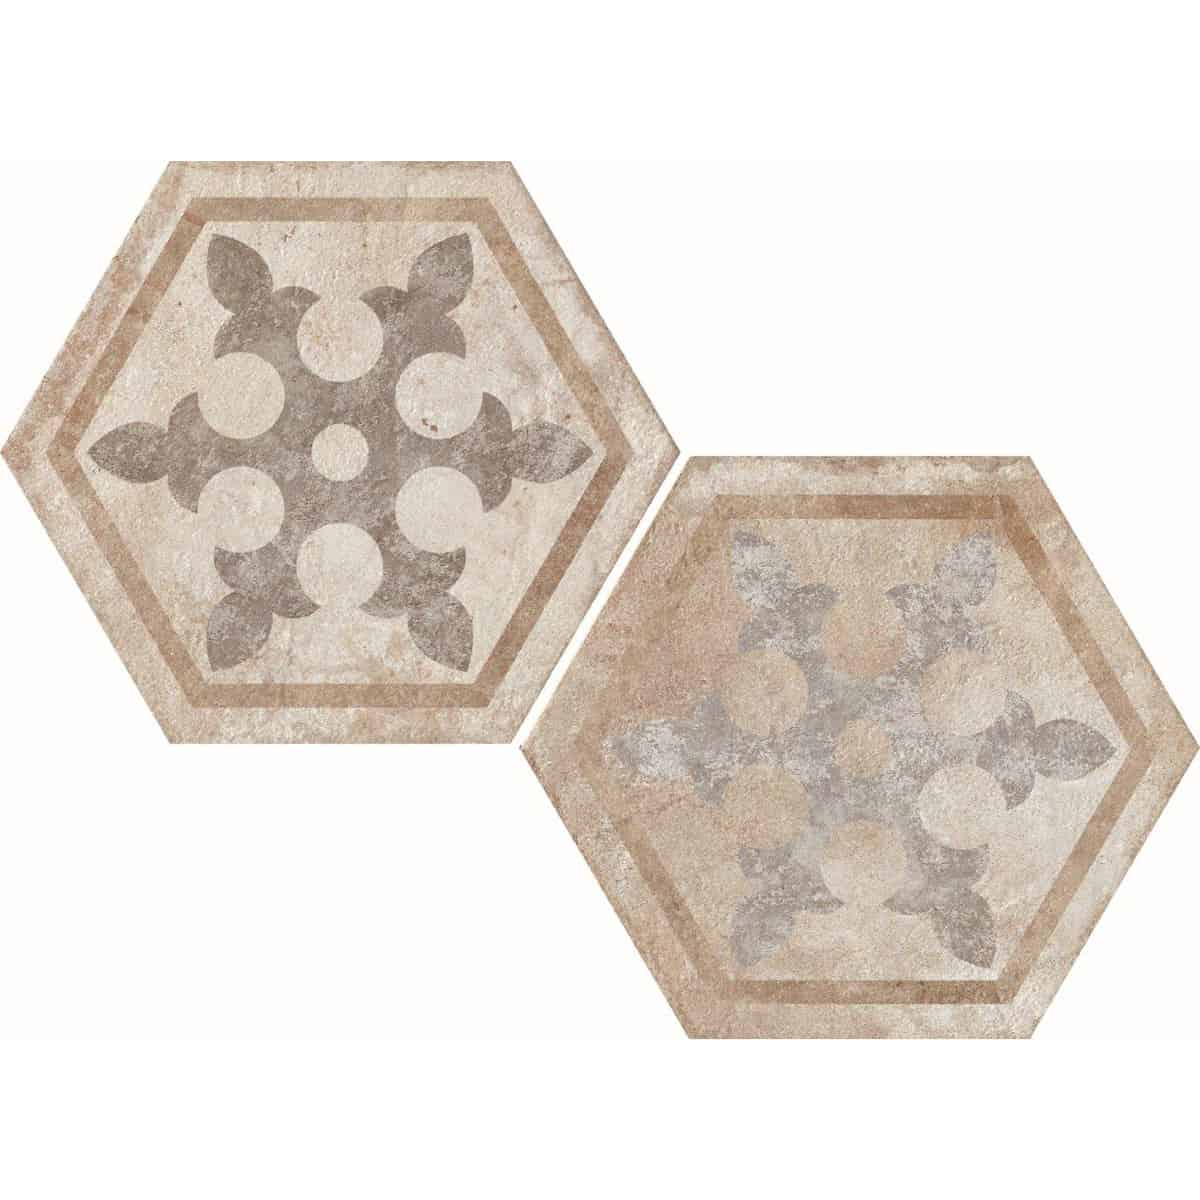 large format pattern hexagon tile 345x400mm Deco Heritage texture 1 by Decobella tiles - South Africa Big format porcelain tiles from Italy and with up to 100 shades, this tile is ideal when considering a pattern hex tile with an authentic feel. Enjoy the quility of porcelain with the look of clay or cement.